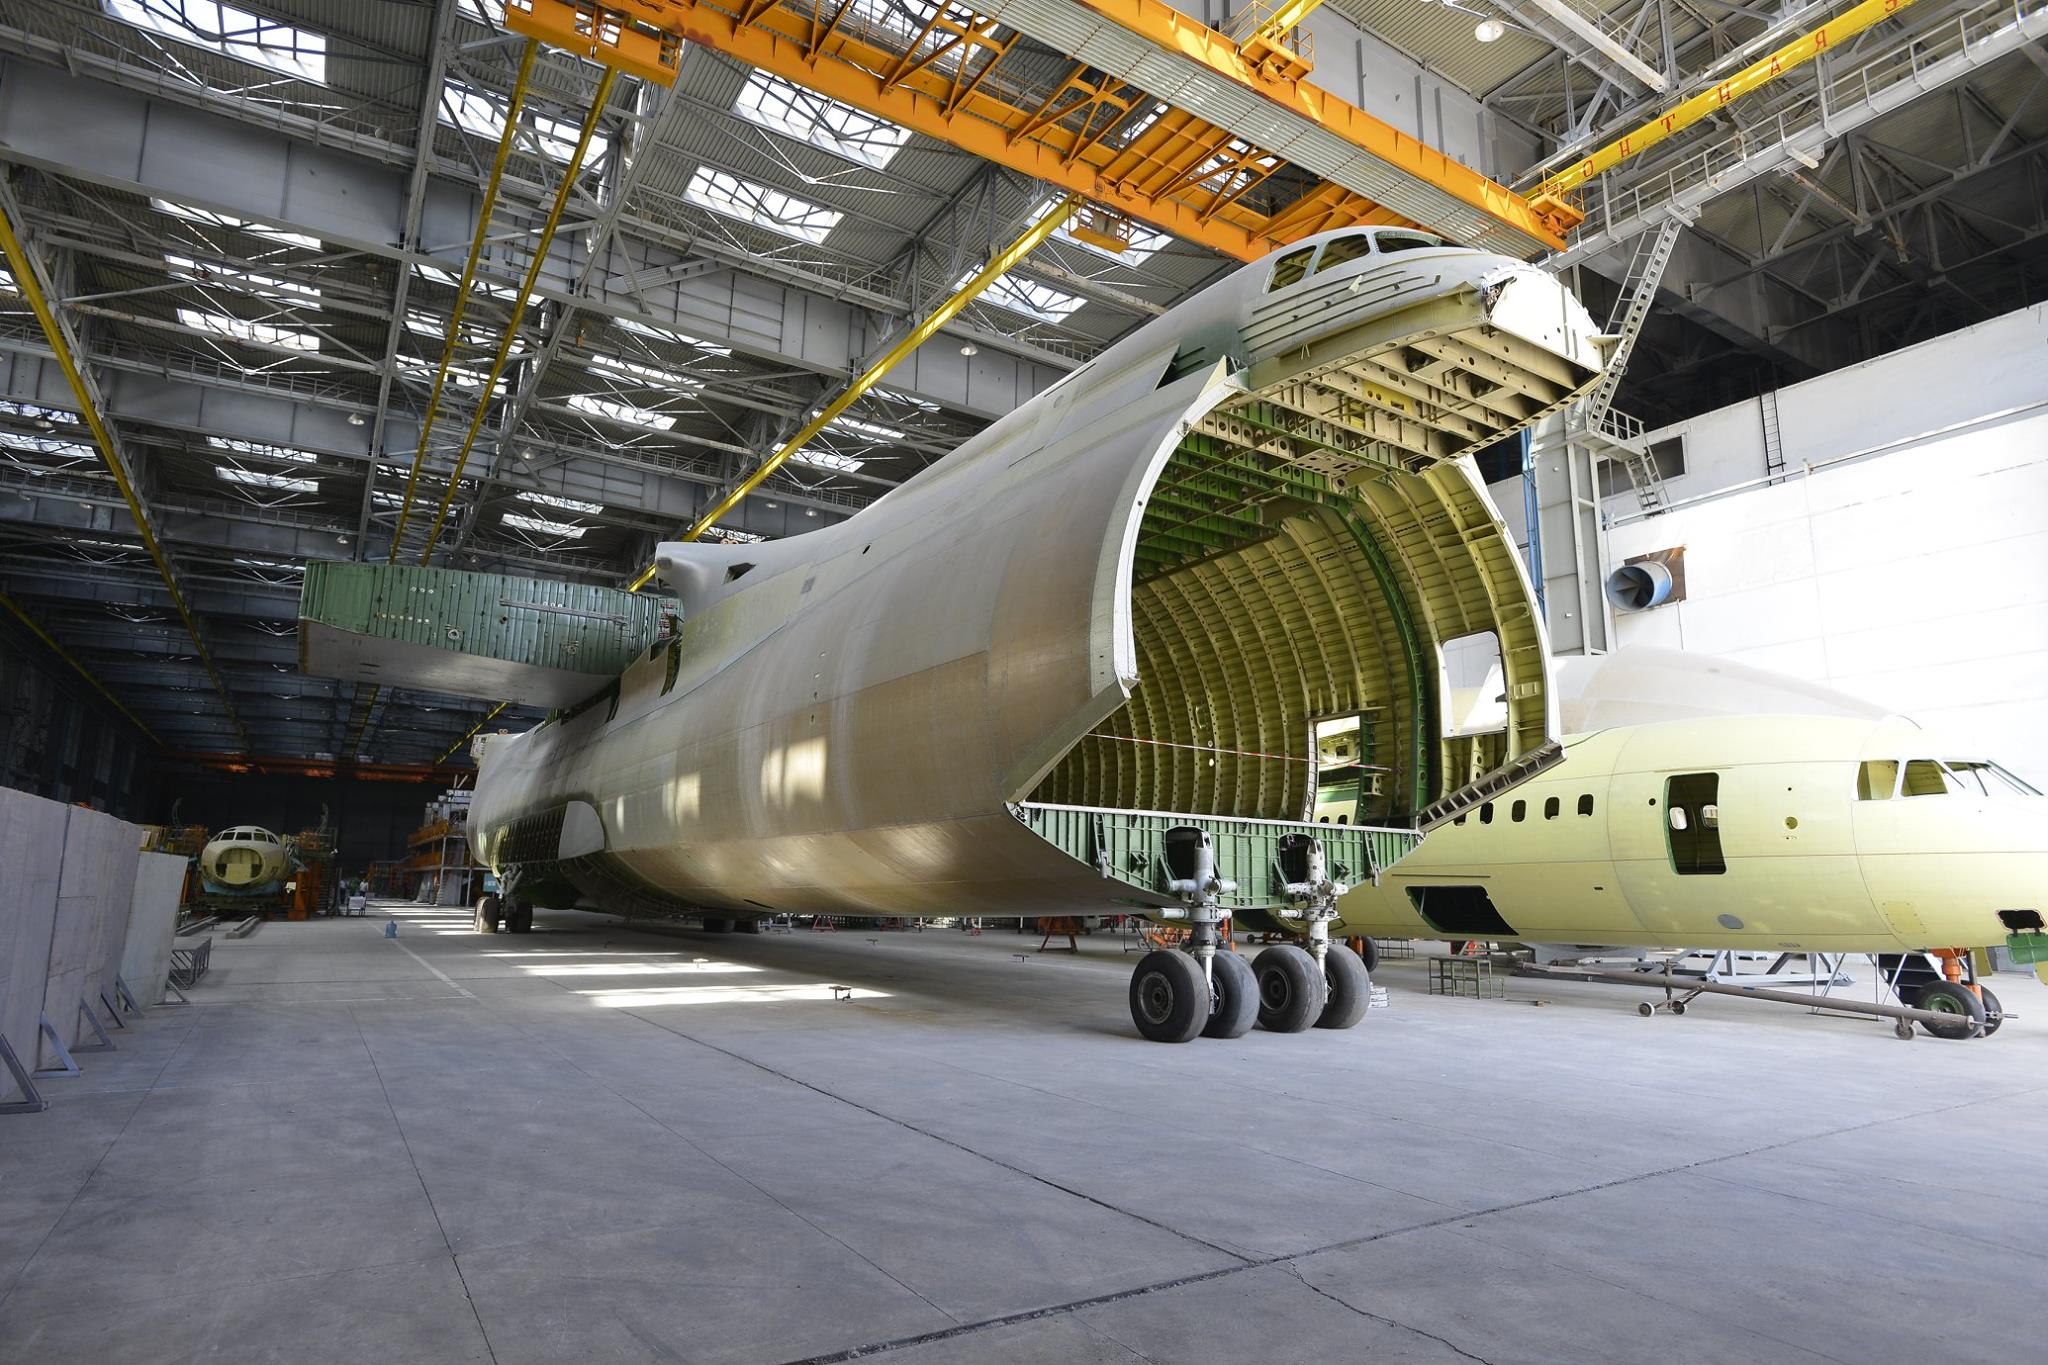 Ukraine, China agree to jointly build new A-225 super-heavy transport aircraft